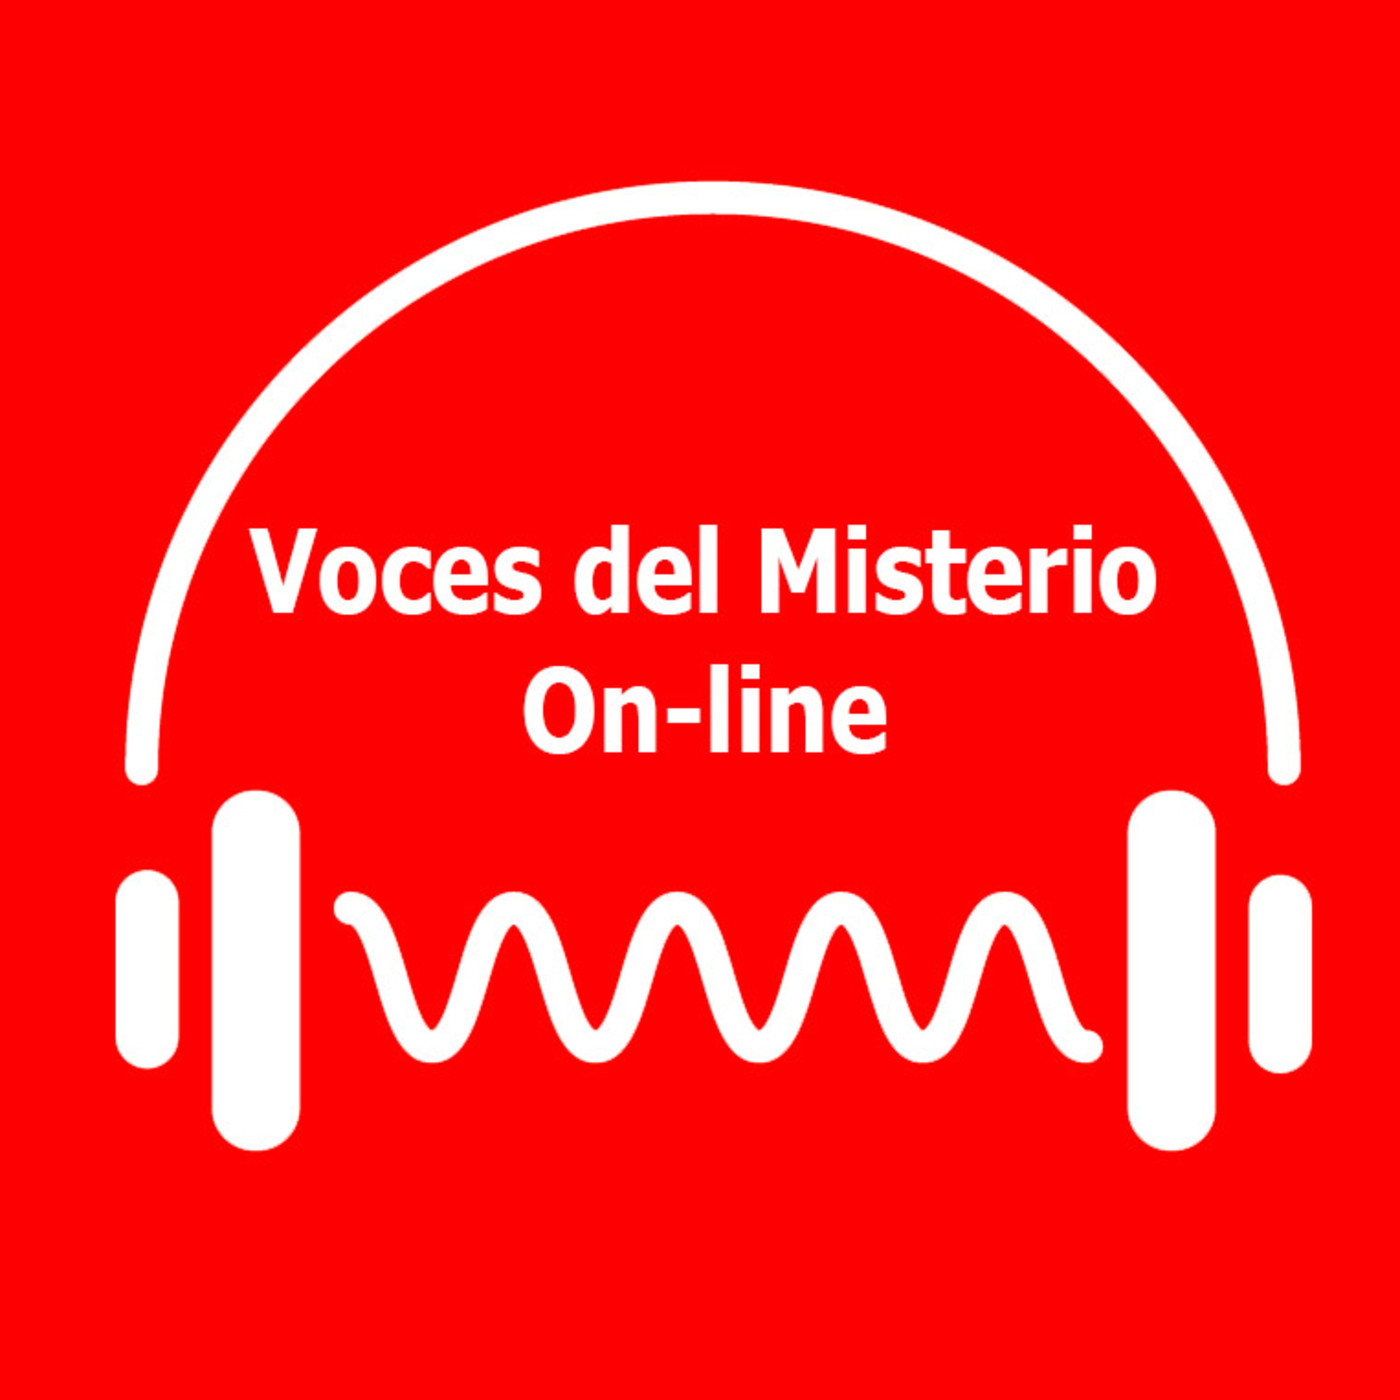 Escucha Voces del Misterio on-line - iVoox